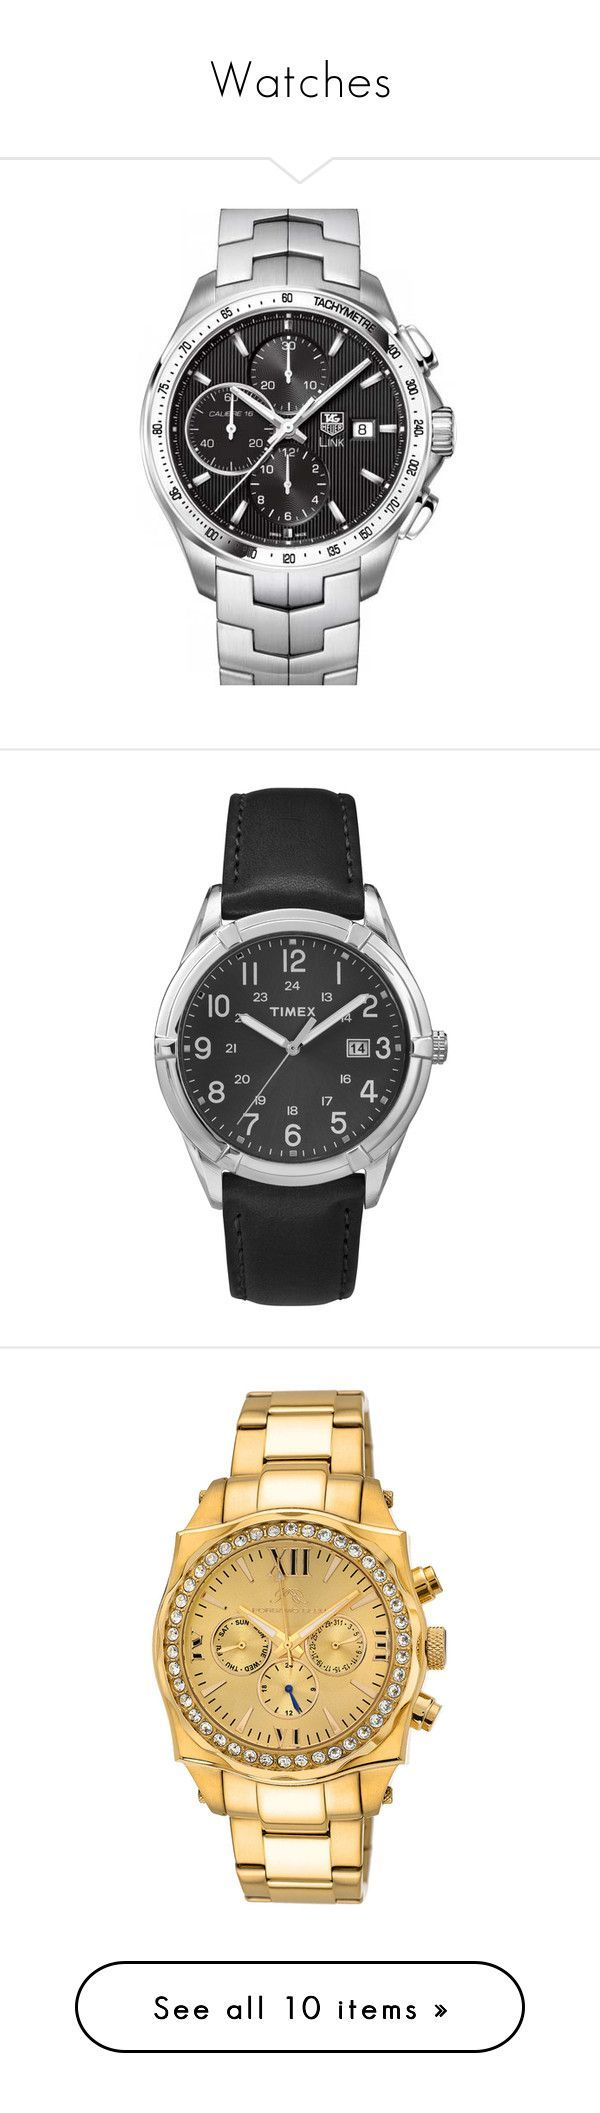 """Watches"" by richard-cmi ❤ liked on Polyvore featuring men's fashion, men's jewelry, men's watches, watches, men, jewelry, accessories, guys, mens watches and tag heuer mens watches - where to buy mens jewelry, real mens jewelry, mens designer jewelry brands"